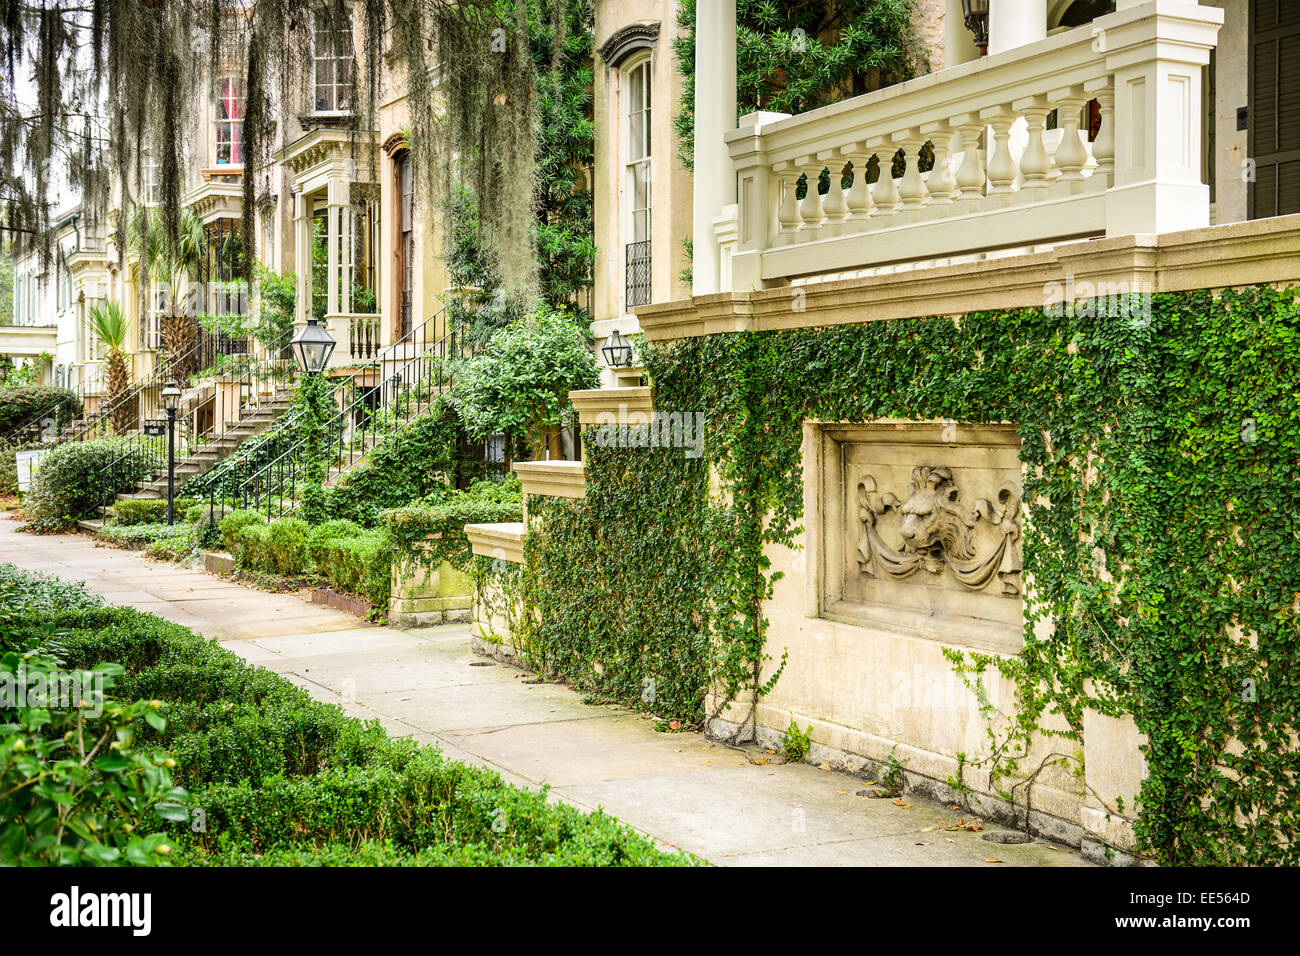 Street scene in Savannah, Georgia, USA. - Stock Image